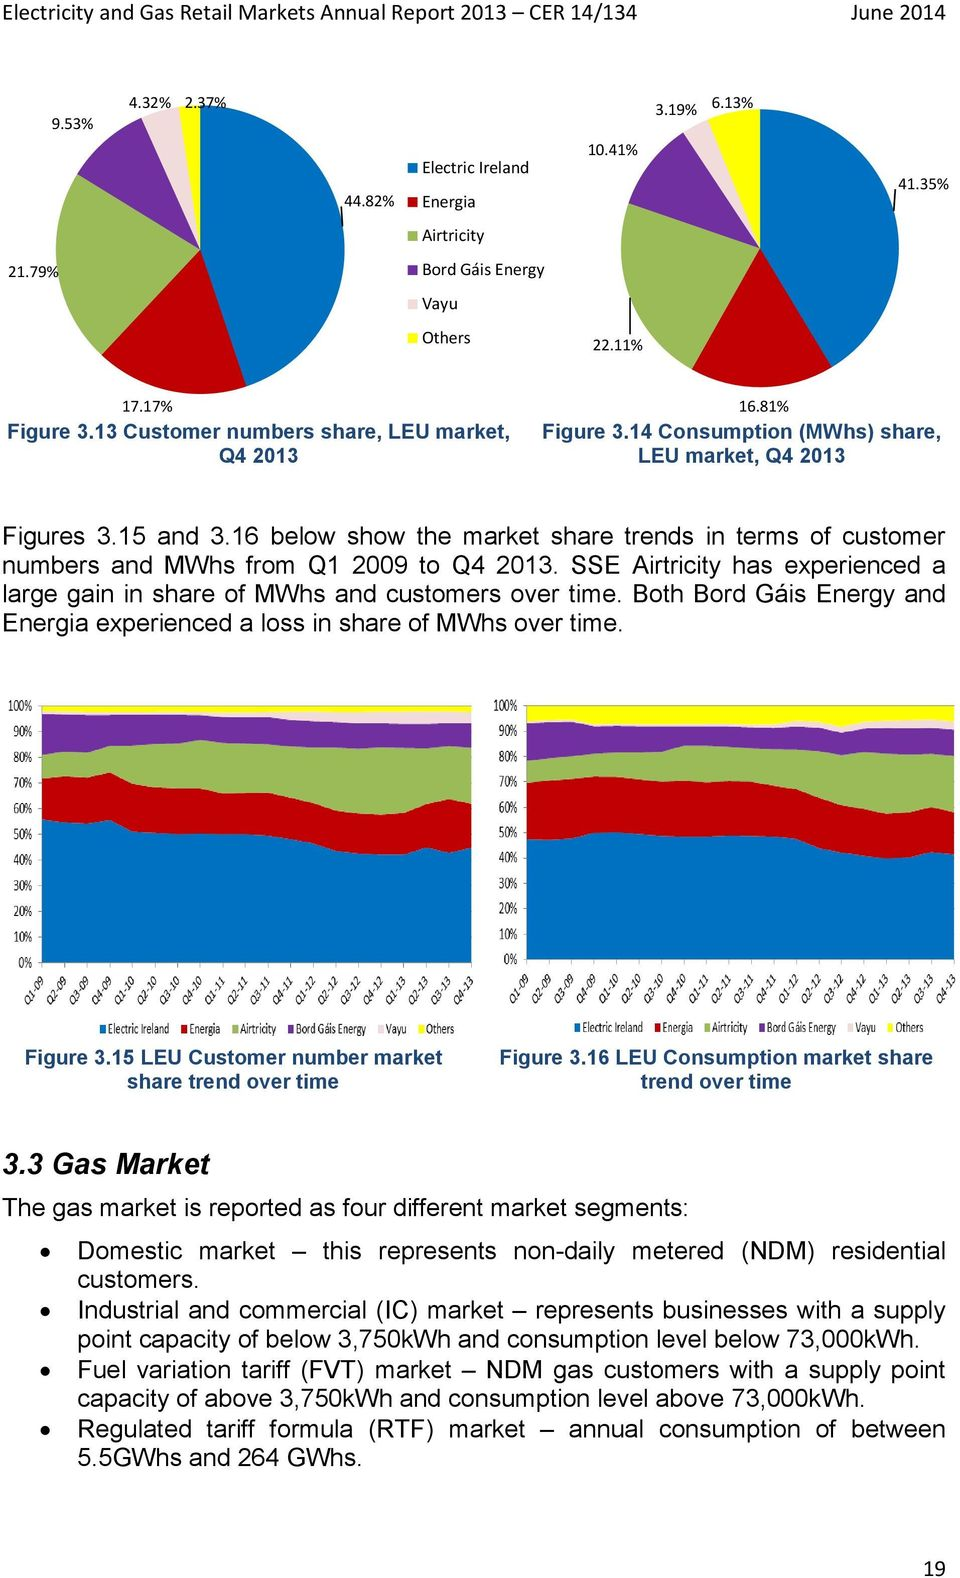 SSE Airtricity has experienced a large gain in share of MWhs and customers over time. Both Bord Gáis Energy and Energia experienced a loss in share of MWhs over time. Figure 3.